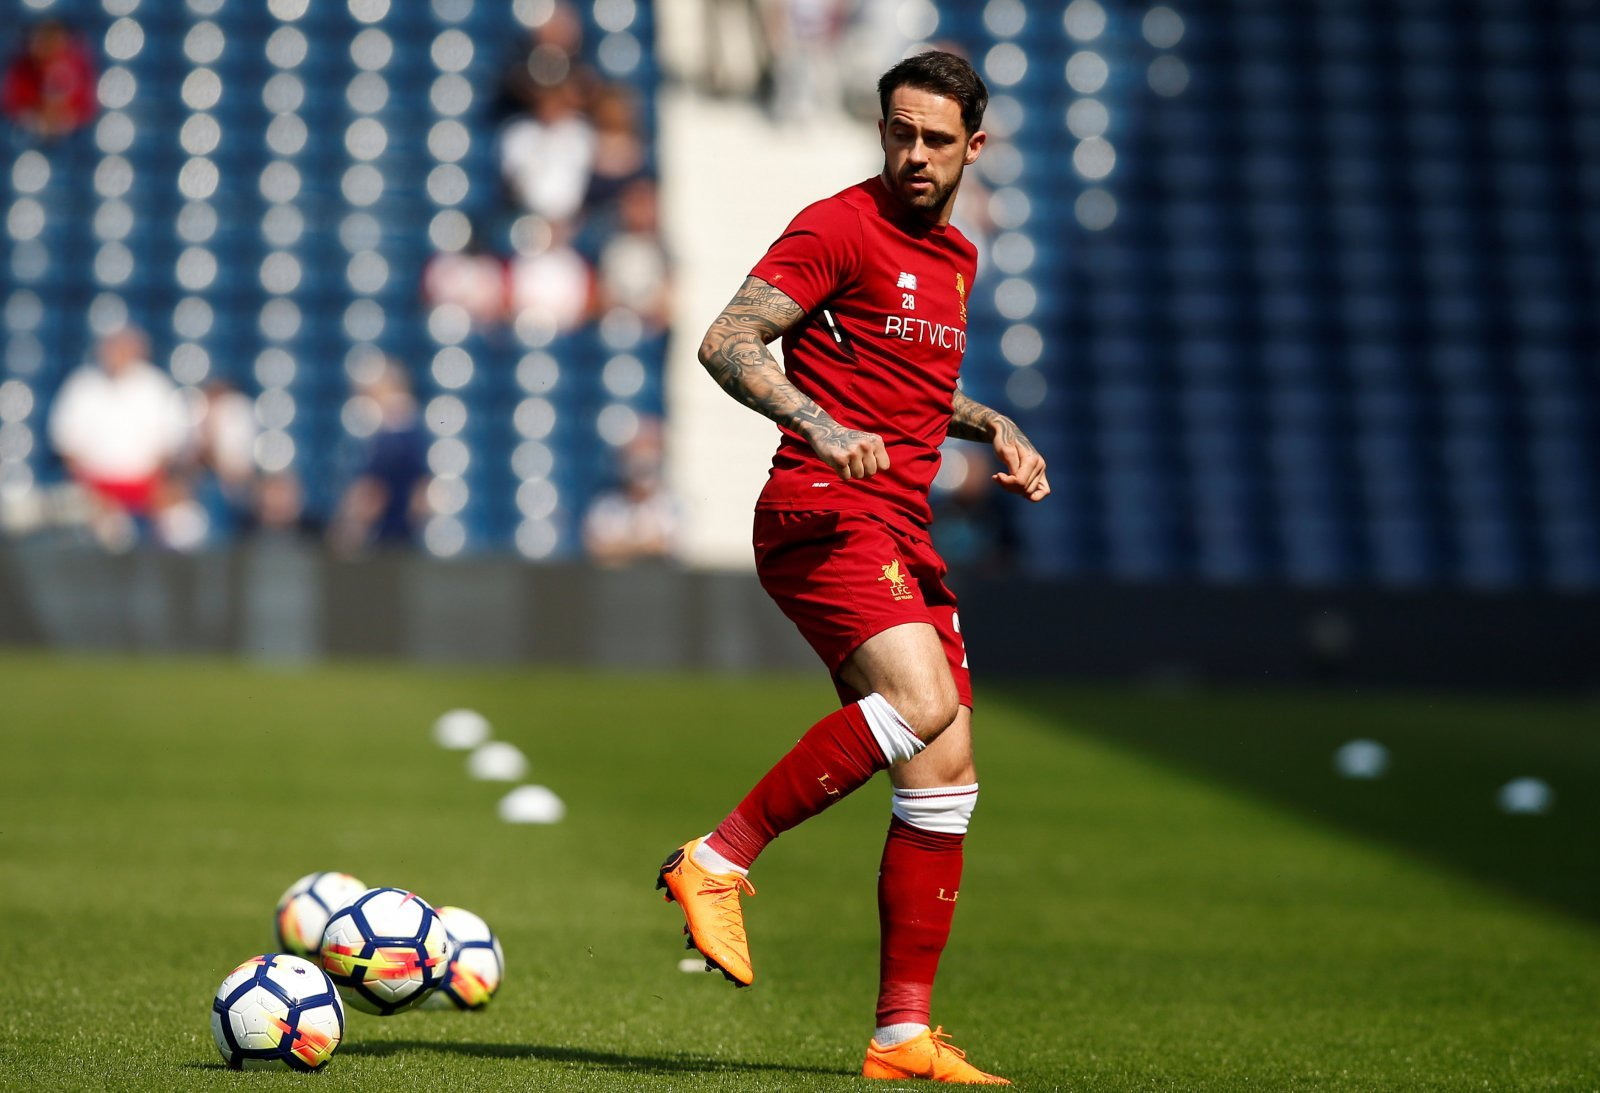 Southampton lead the race for Danny Ings